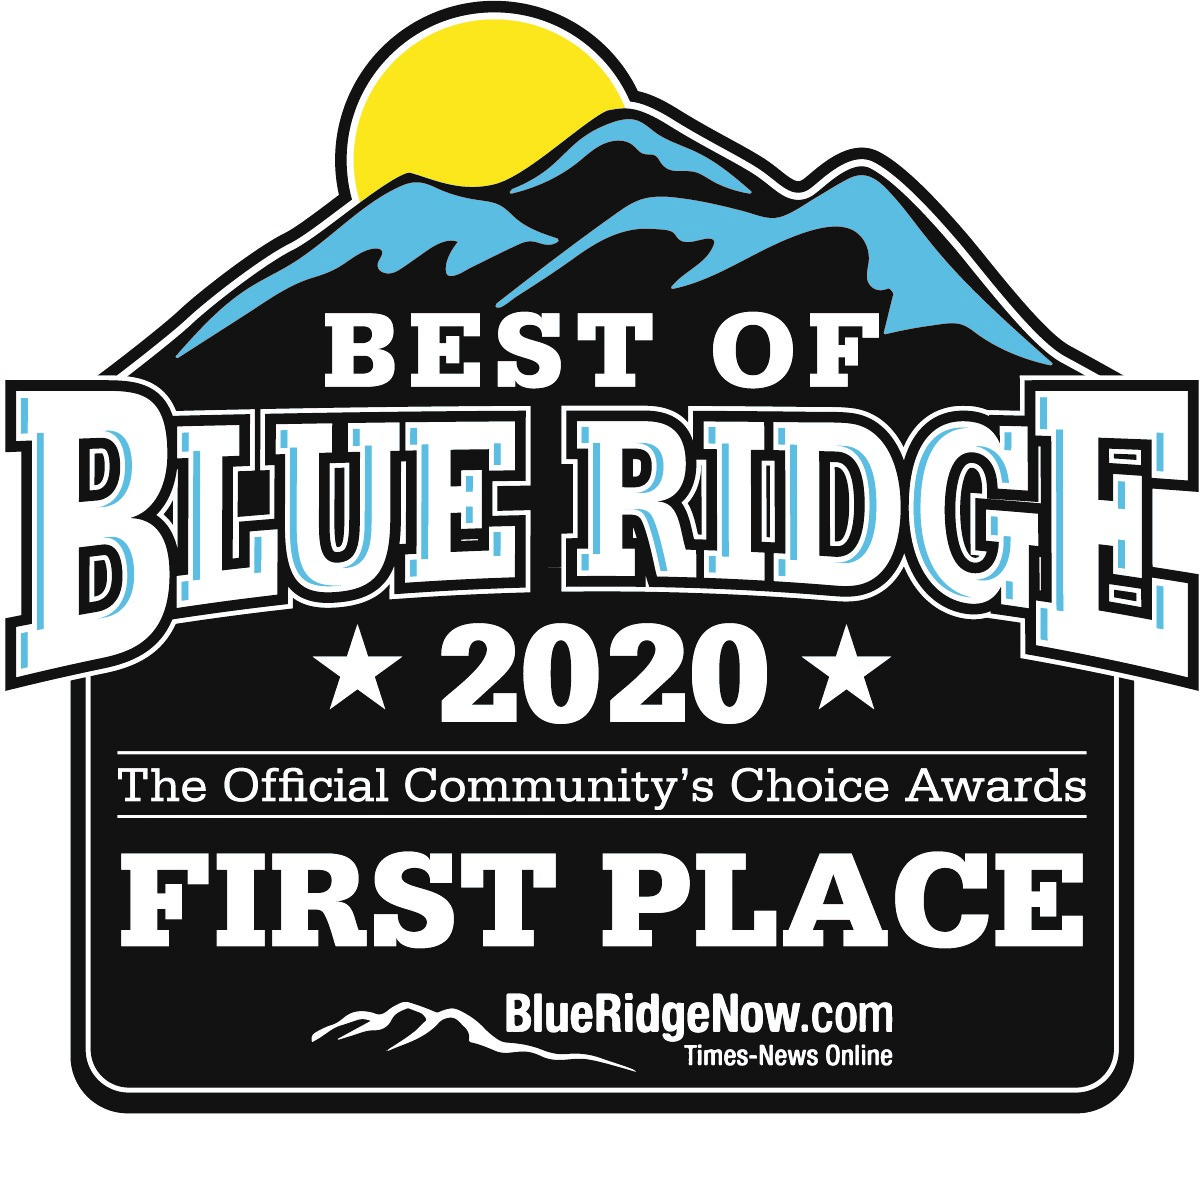 Best of Blue Ridge 2020!